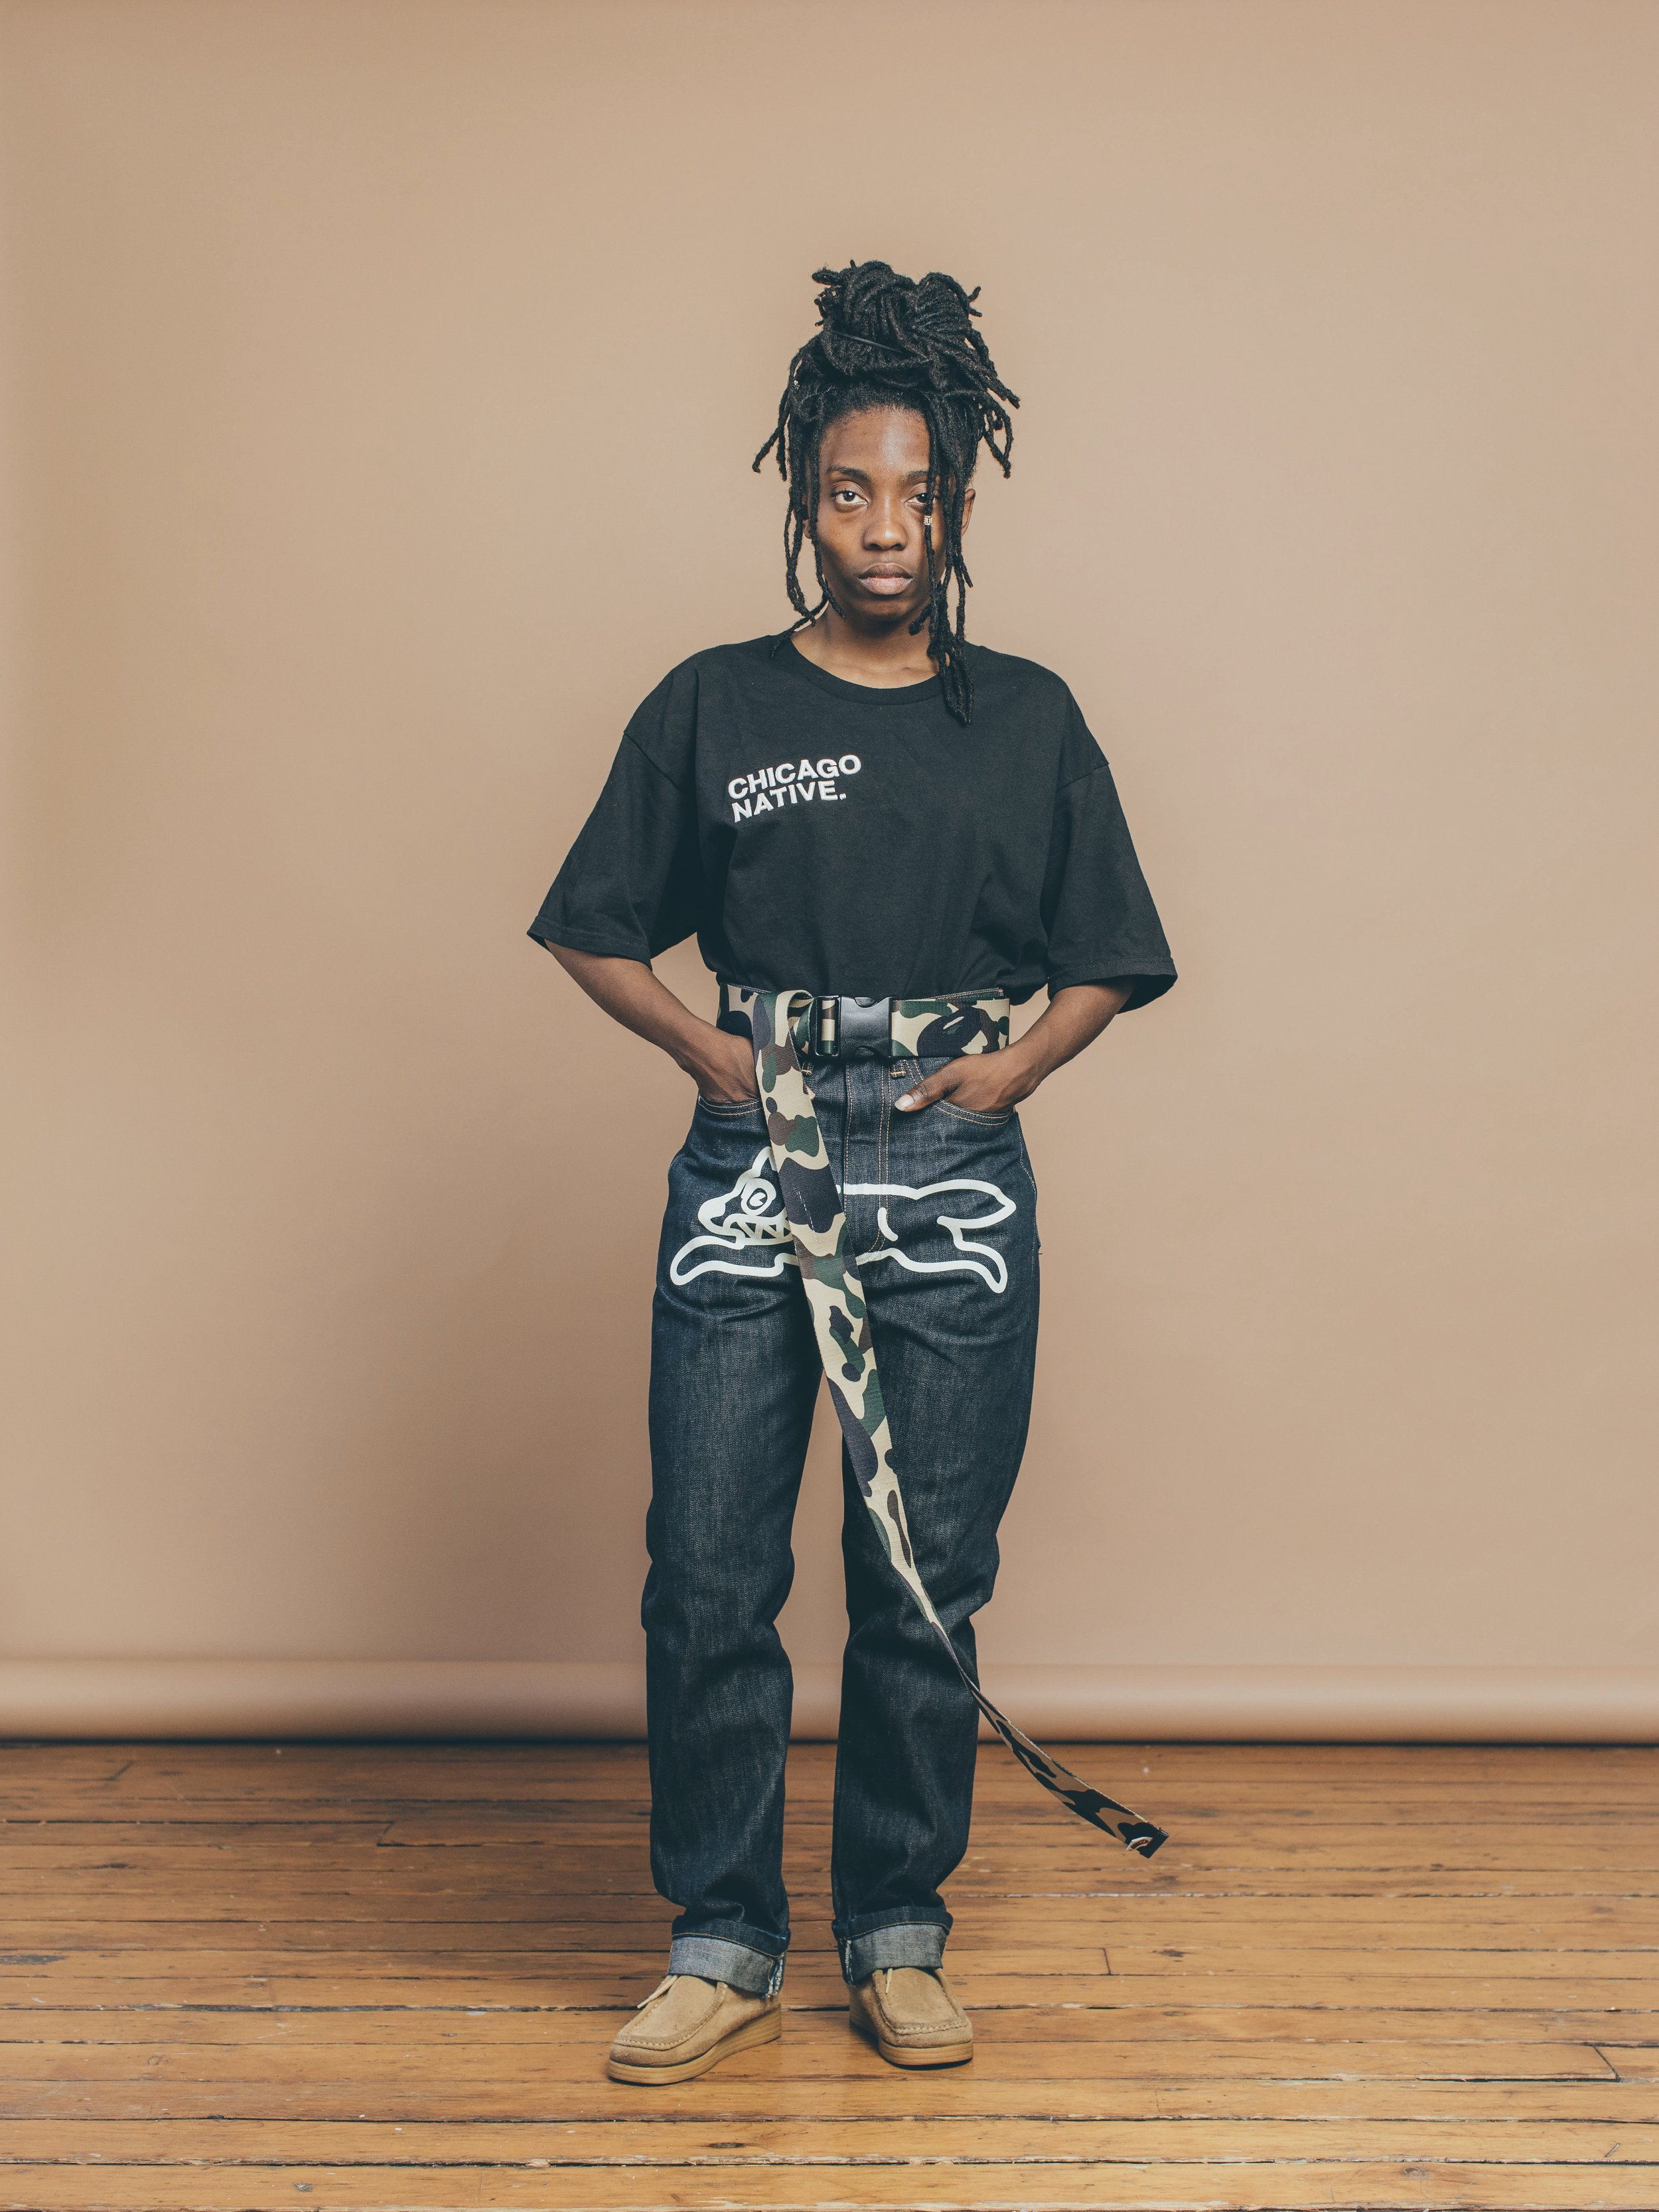 Ameera Chicago Native Embroidered Tee Limited Edition Collection - Native Society - Juan Riesco Image2.jpg